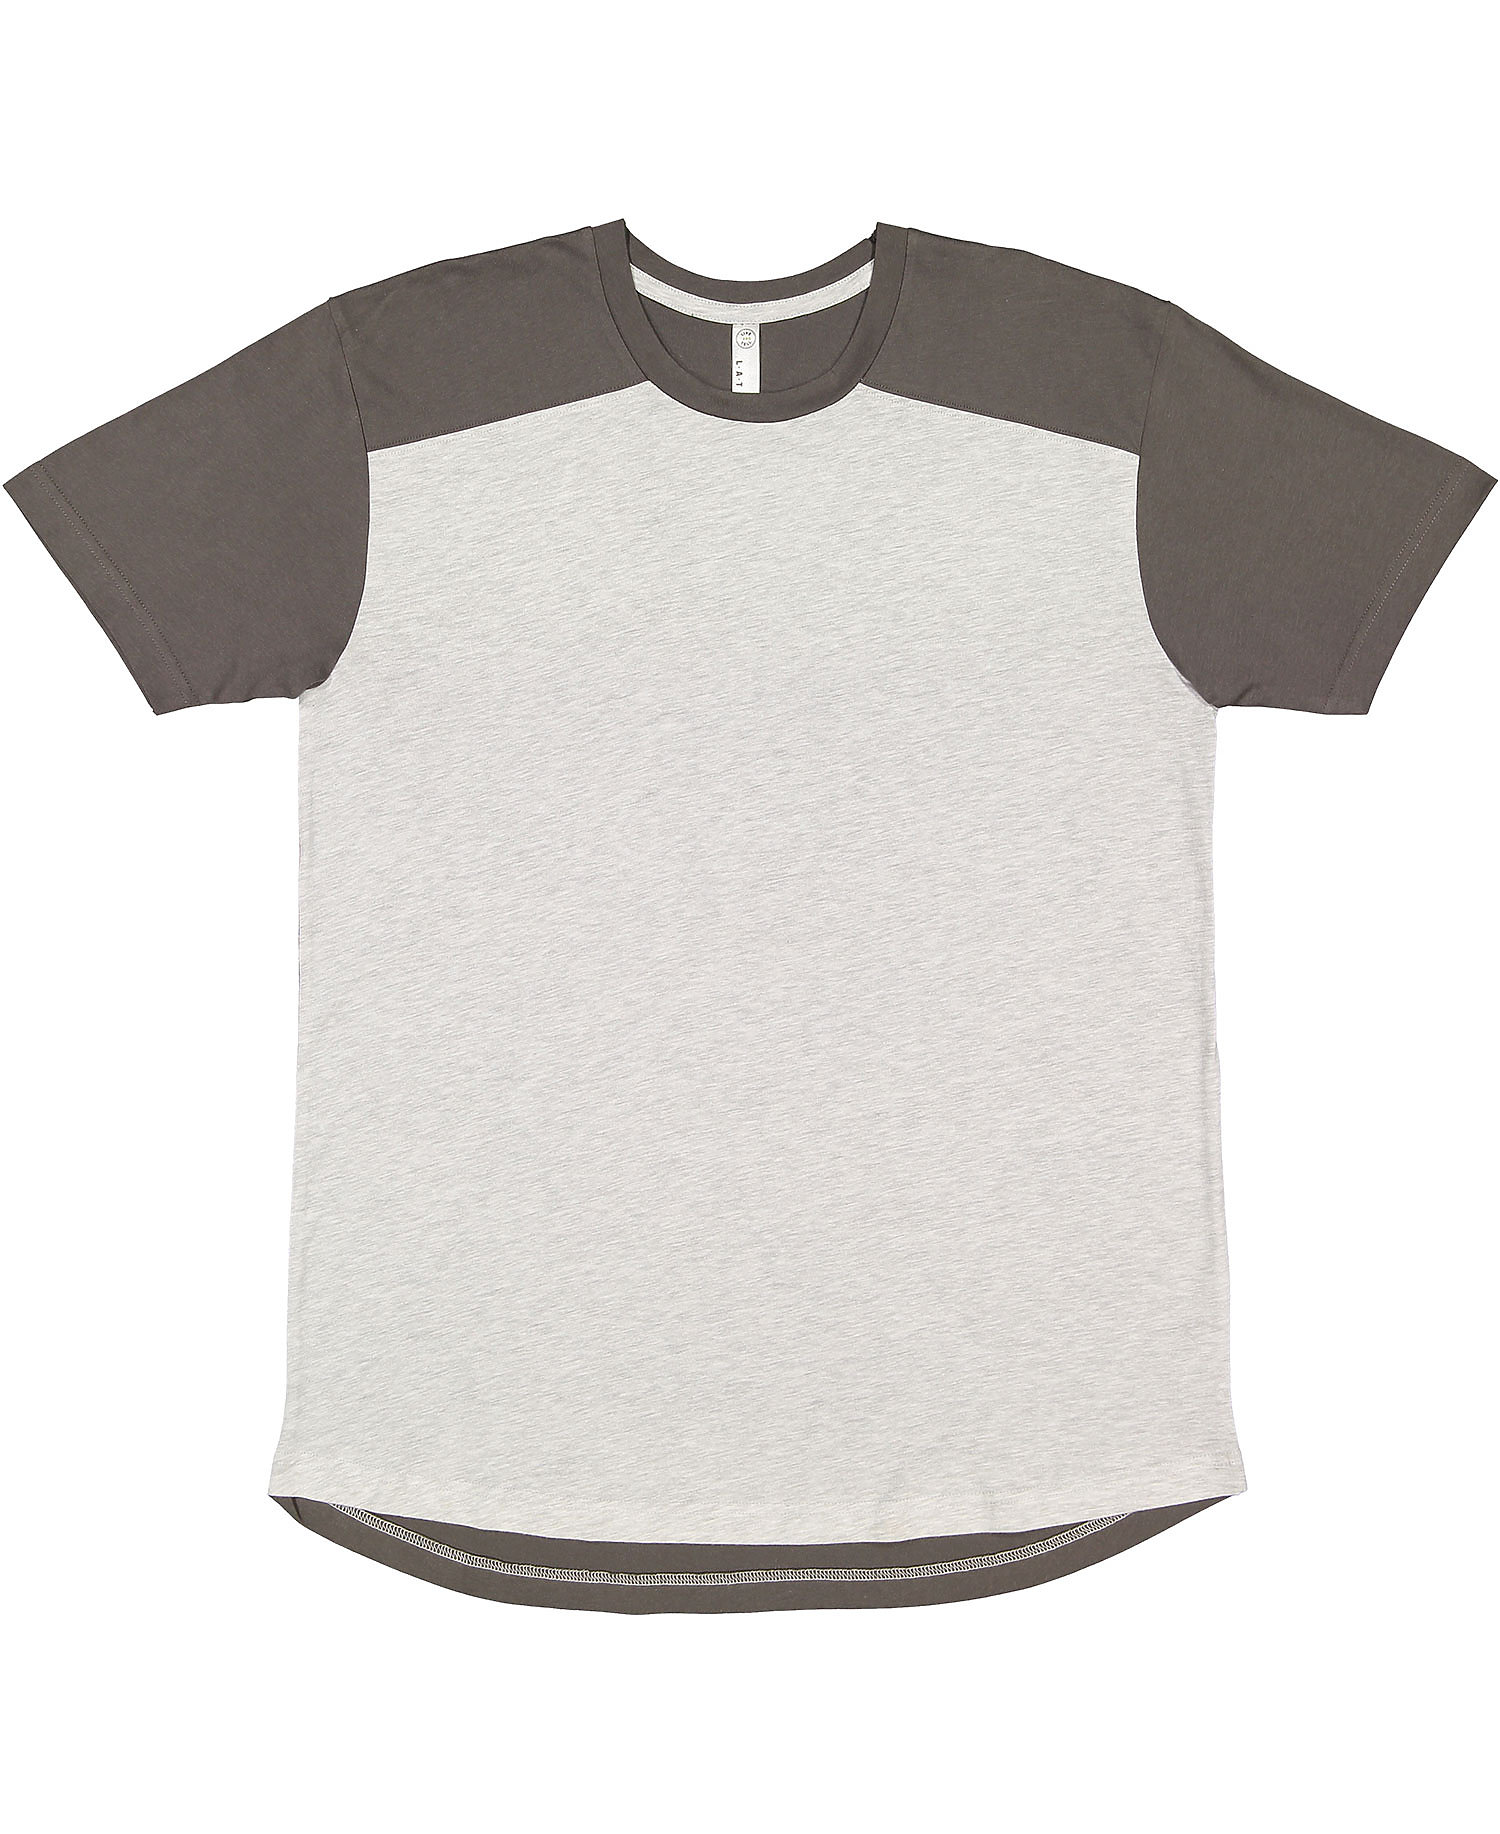 LAT 6911 - Men's Forward Shoulder Fine Jersey Tee